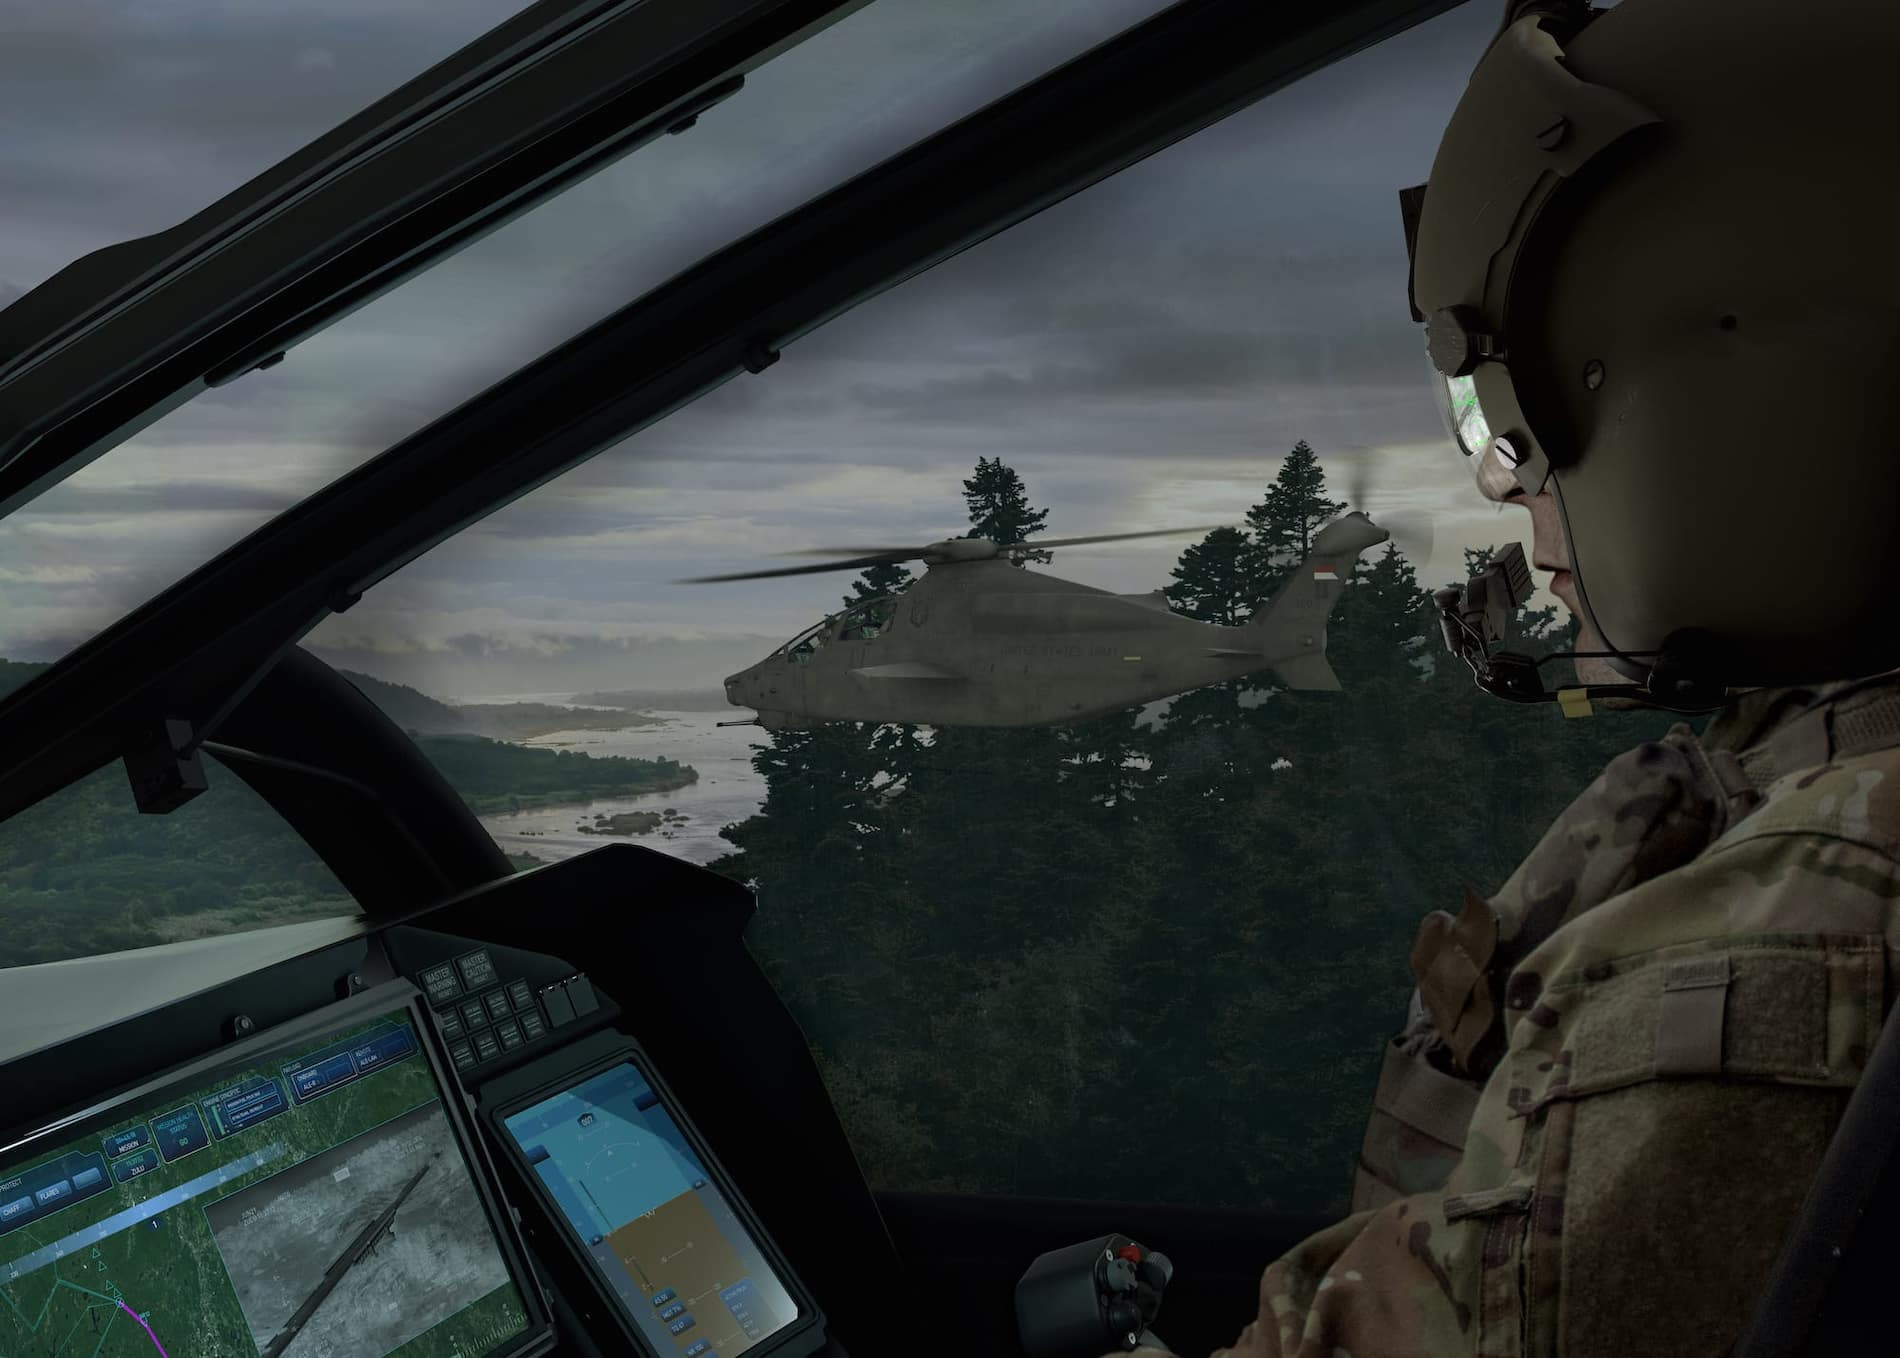 Interior of the Bell 360 Invictus - Bell's entry to the Future Aerial Reconnaissance Aircraft (FARA) for the U.S. Army's Future Vertical Lift (FVL) competition.